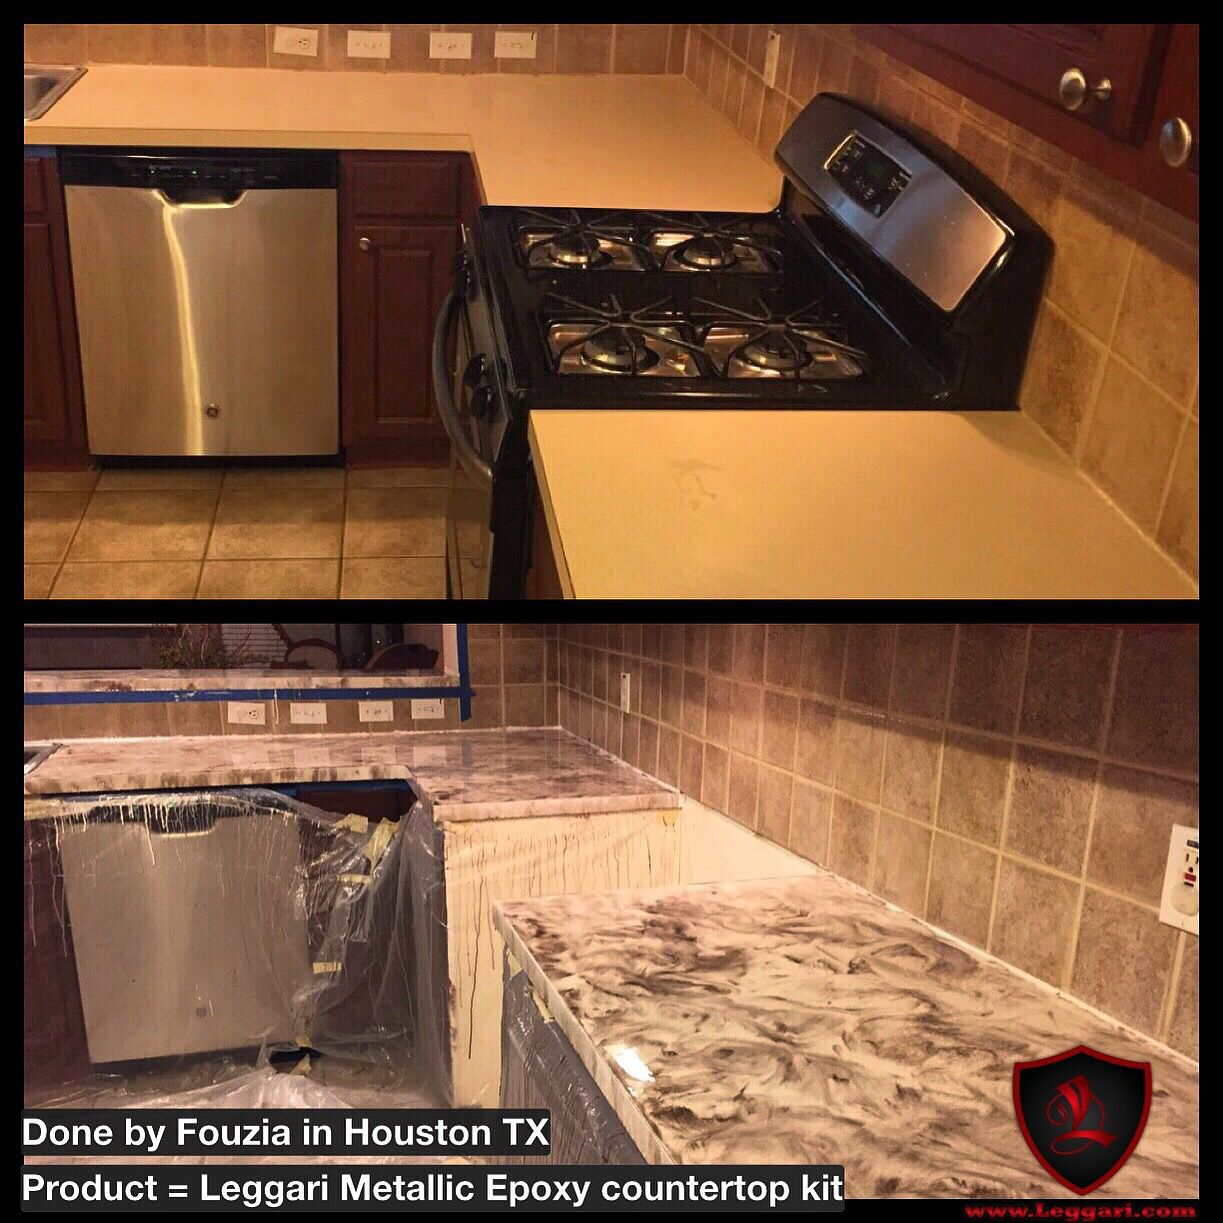 This Countertop Was Coated With A Leggari Products Diy Metallic Epoxy Countertop Resurfacing Kit The Kits S Epoxy Countertop Resurface Countertops Countertops